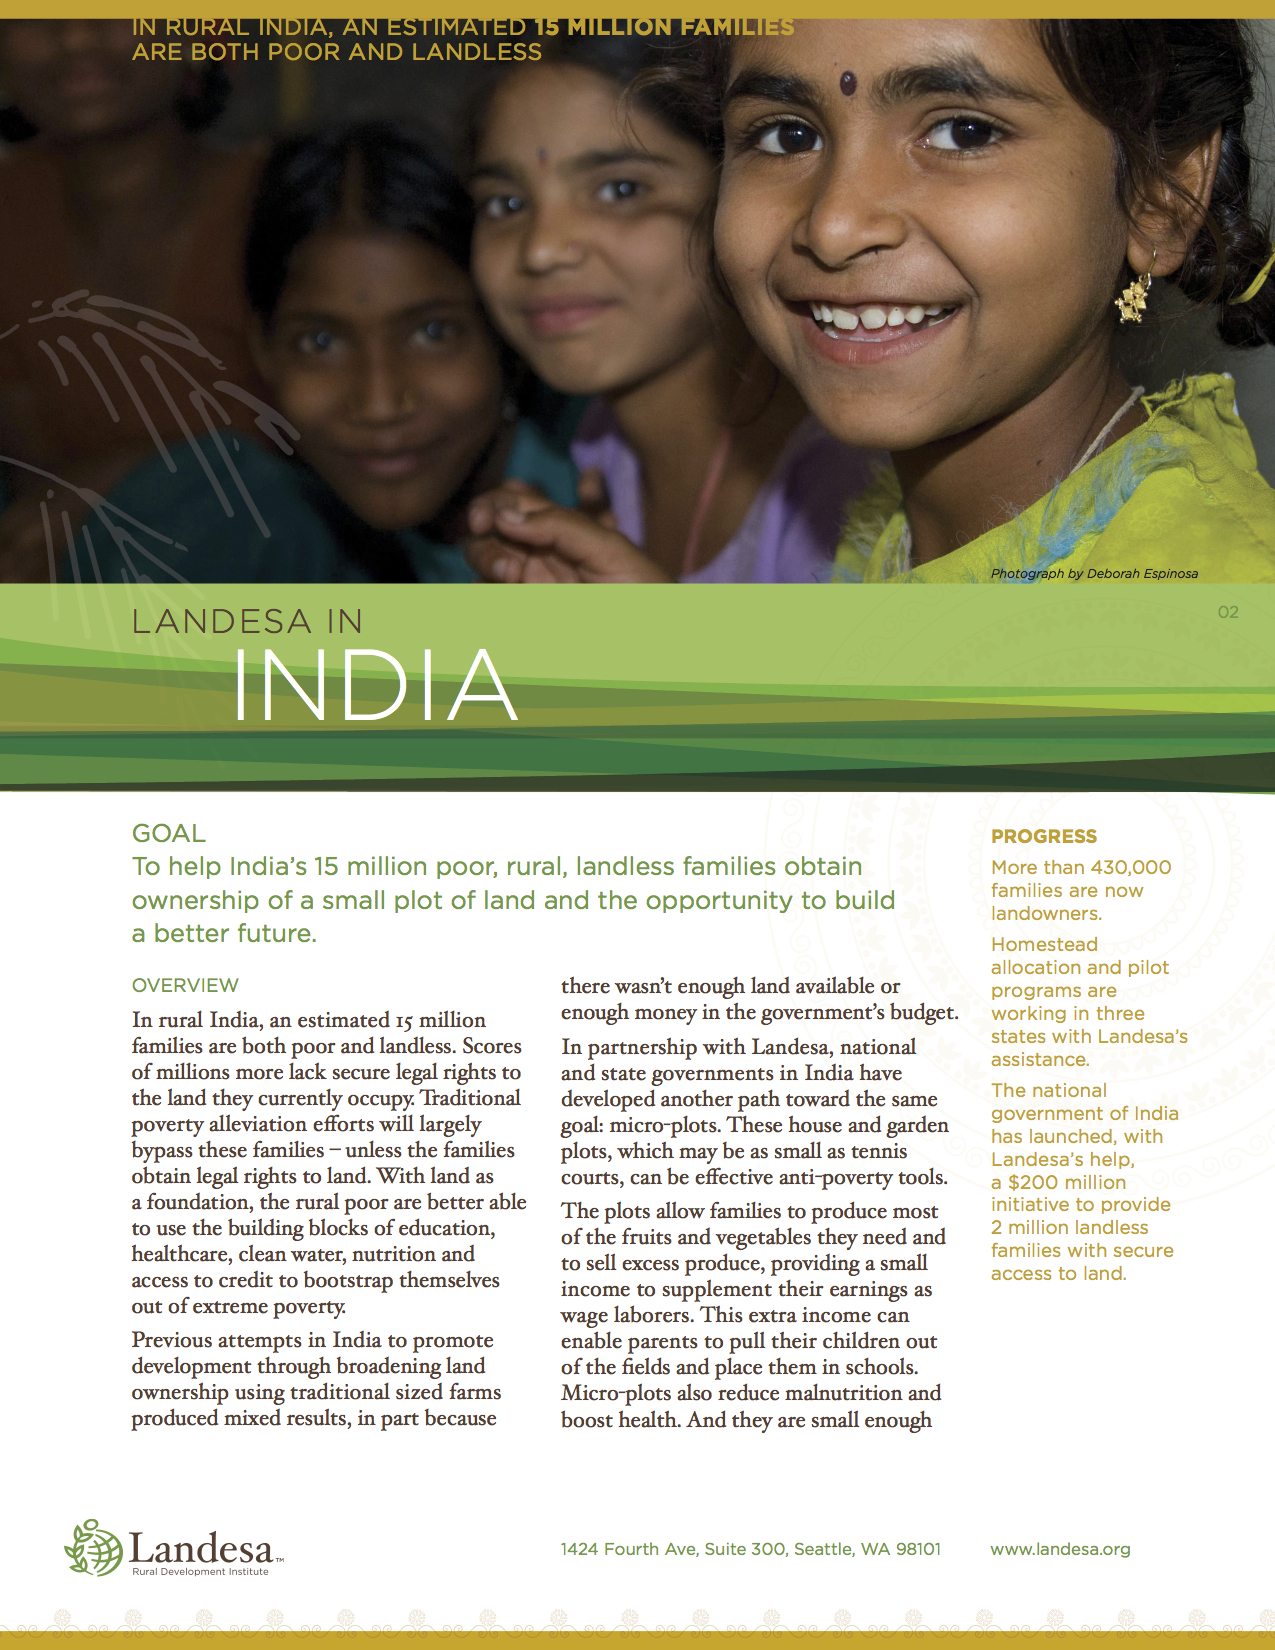 Fact Sheet for Landesa's work in India, which focuses extensively on women and girls.